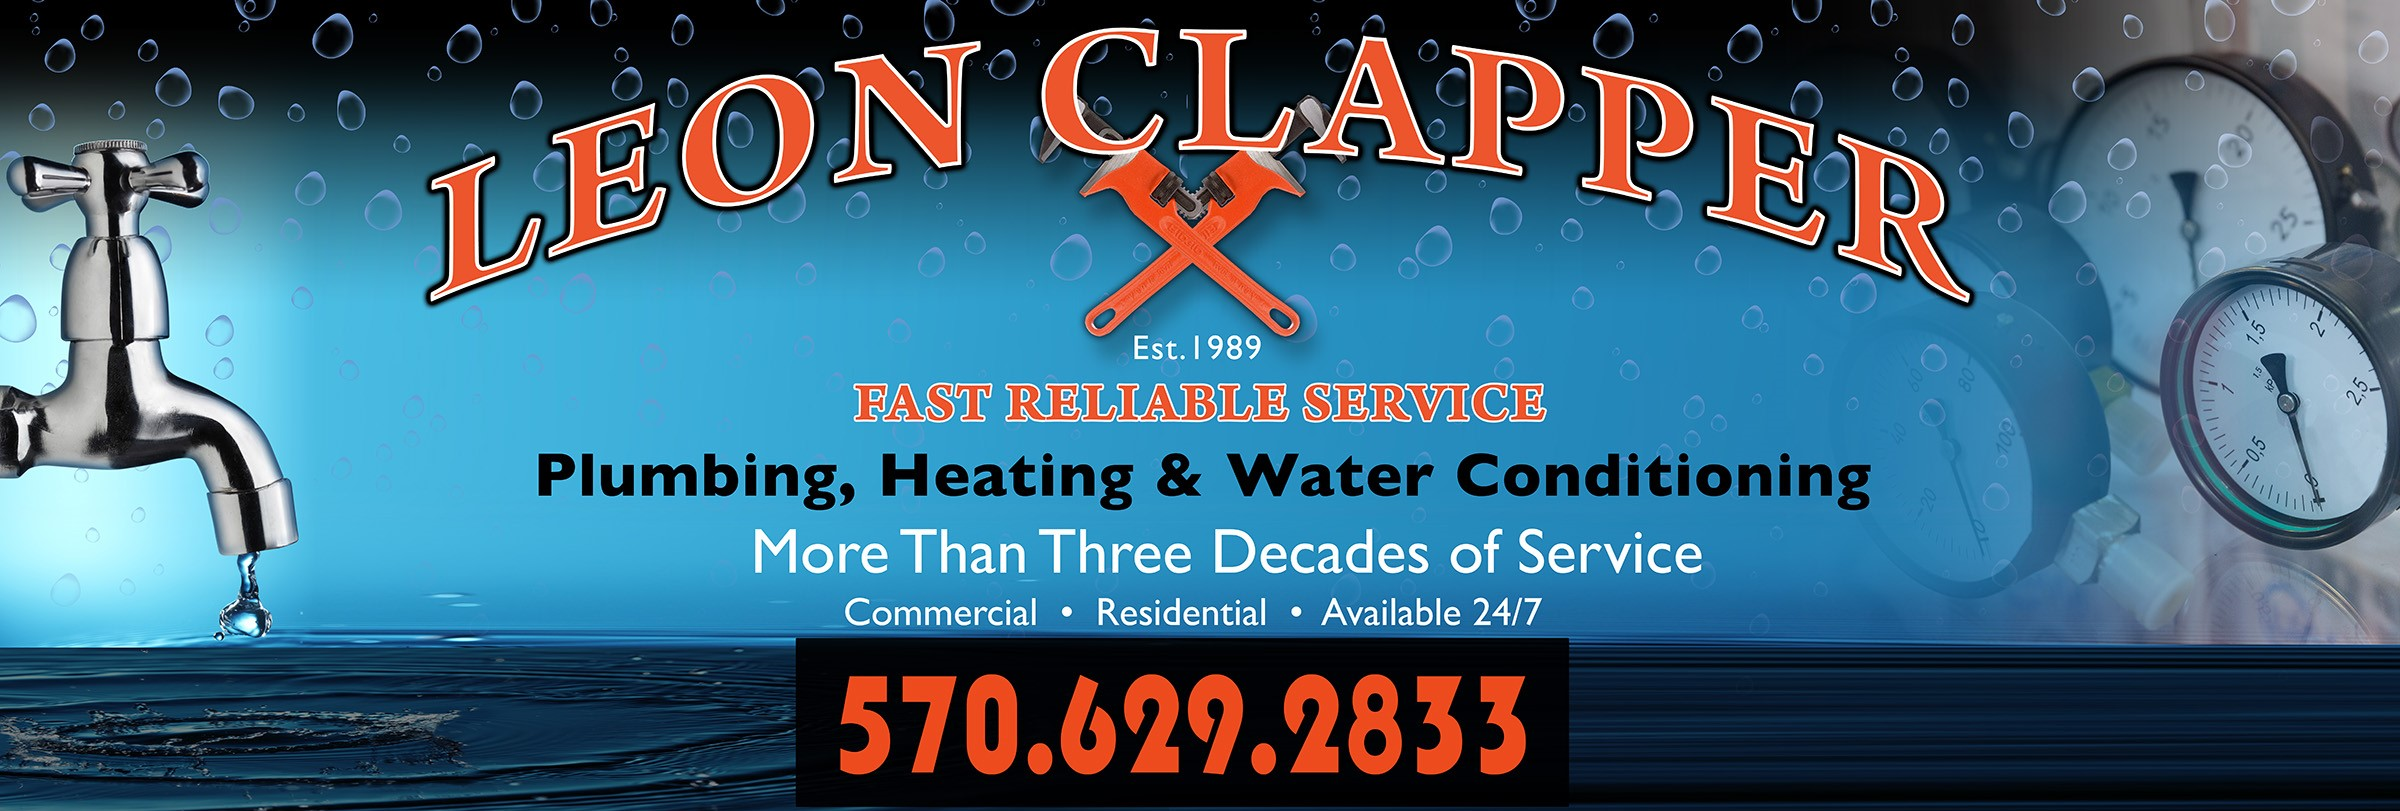 Leon Clapper Plumbing Heating and Water Conditioning